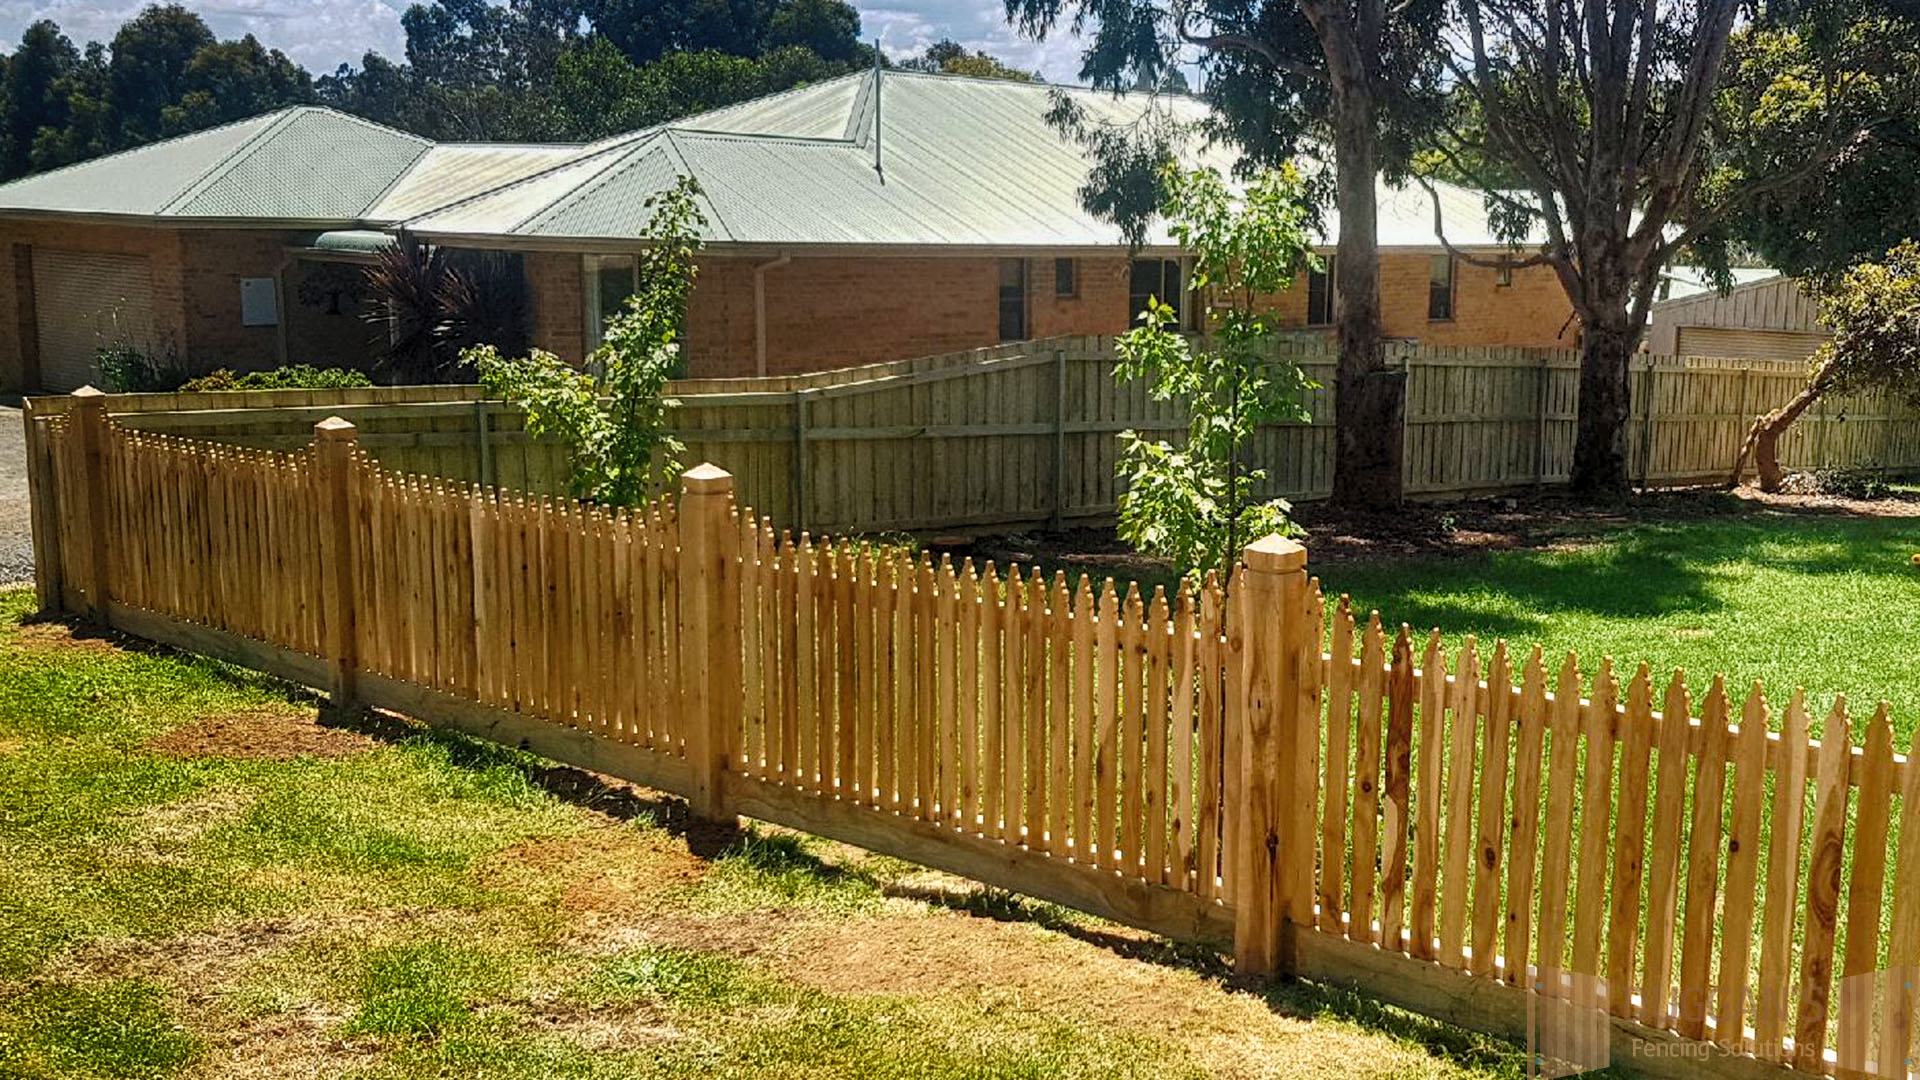 Picket front fence and a Timber side fence